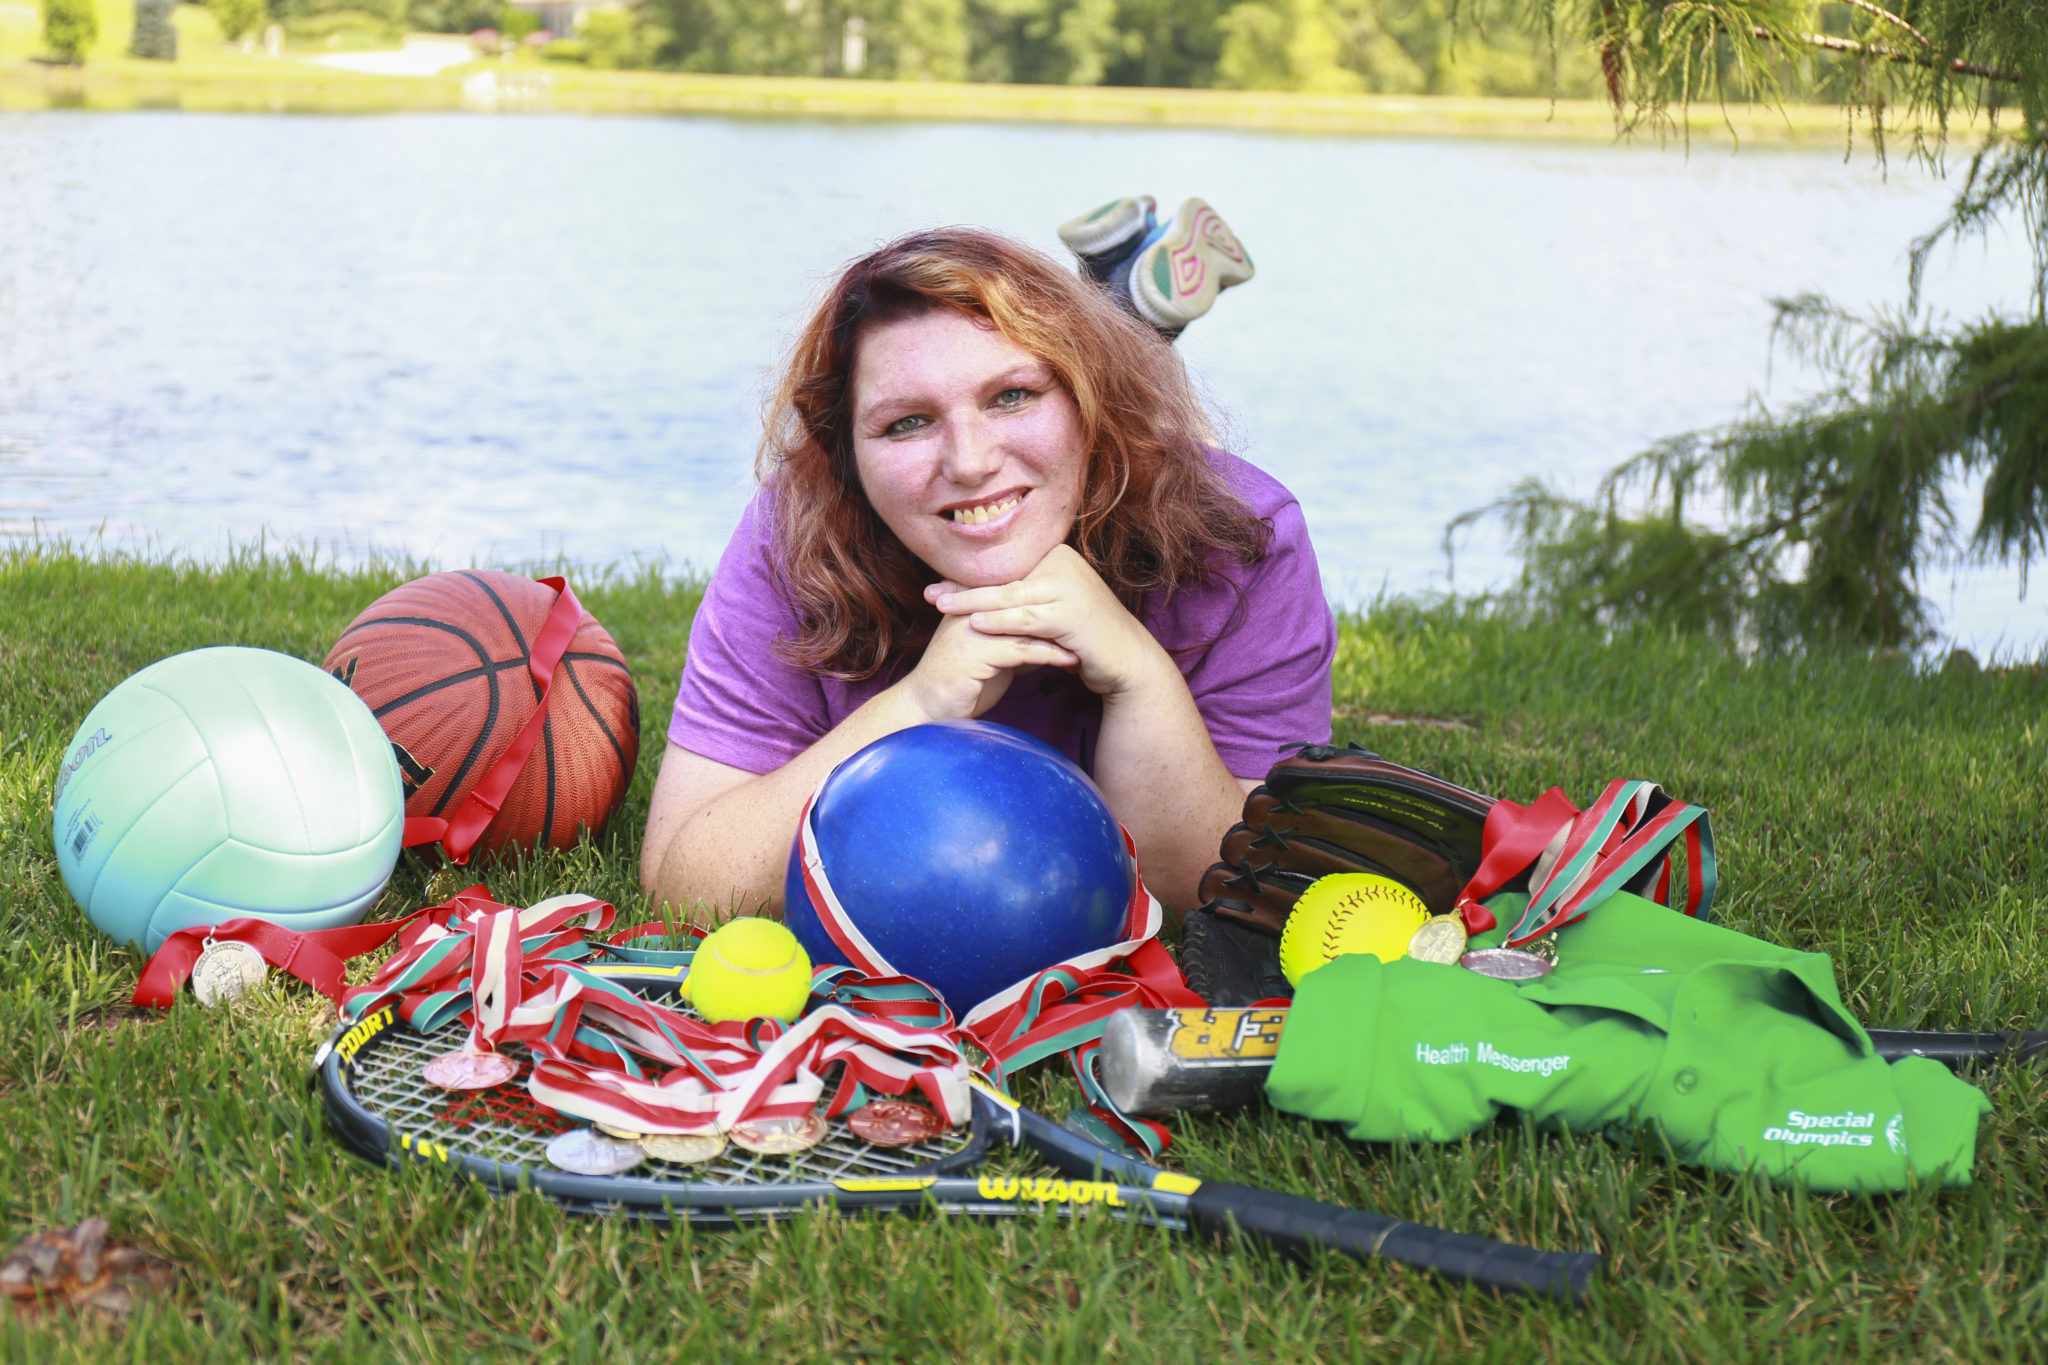 Athlete poses while laying on the ground and smiling at the camera surrounded by sports equipment